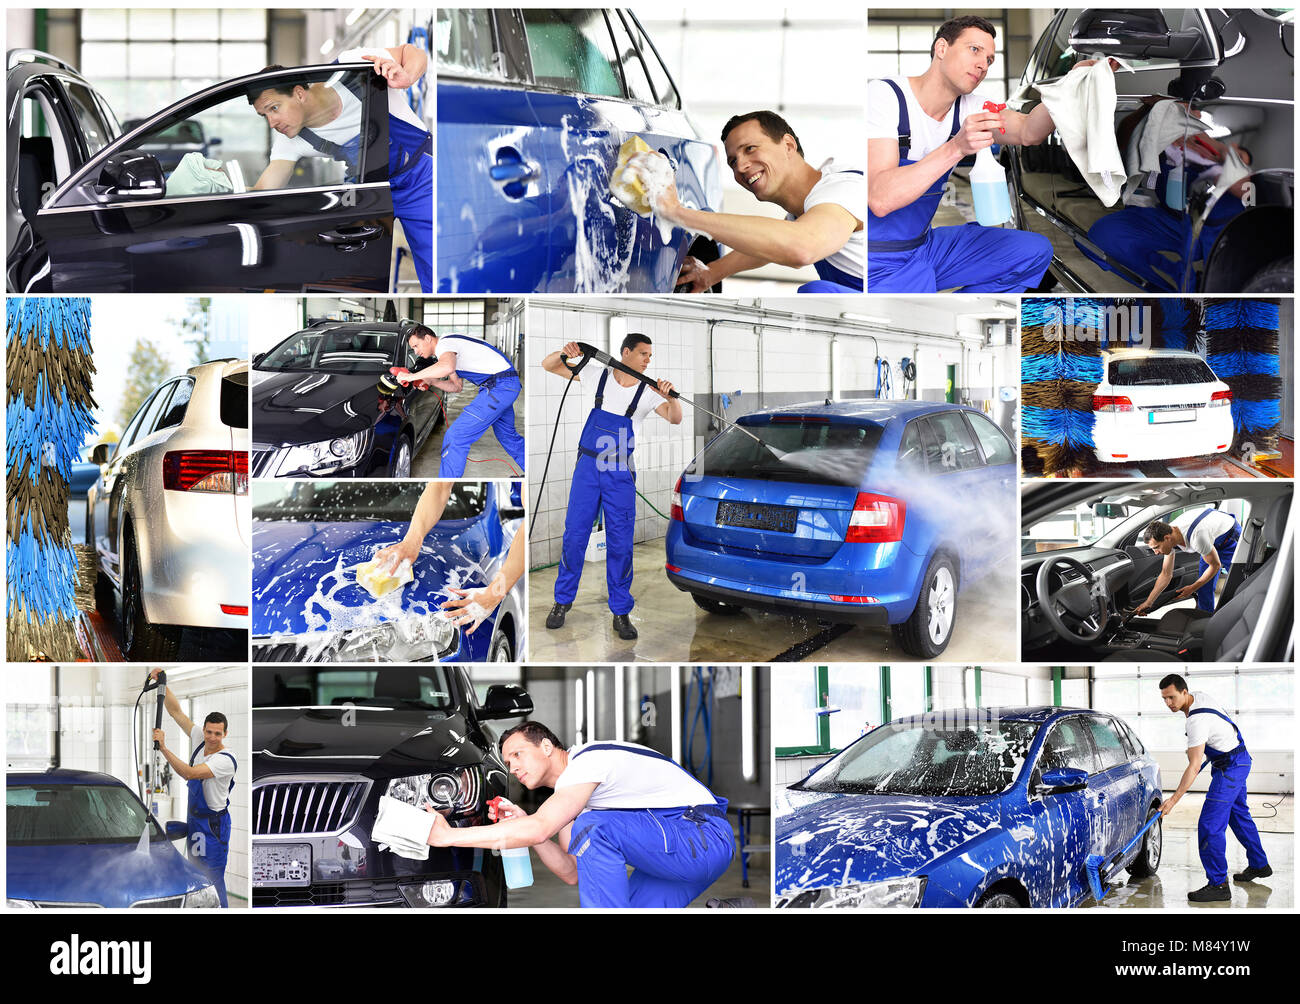 Collage Car wash - employees of a car dealership clean a vehicle professionally - Stock Image